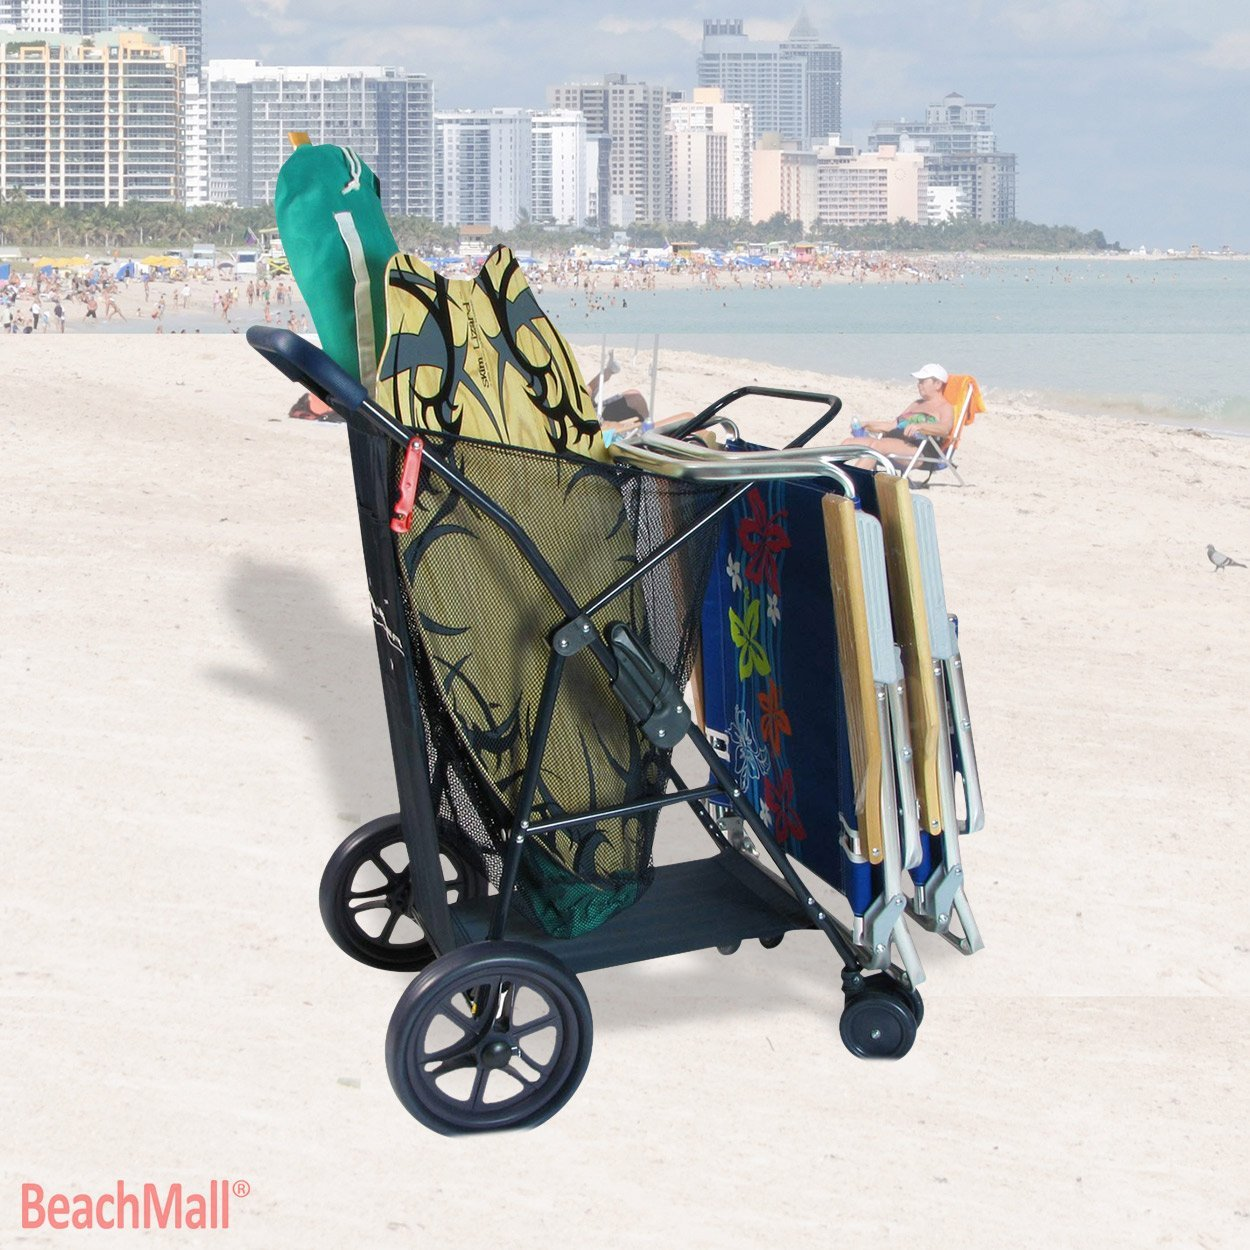 The Rio Wonder Wheeler Plus WWWC5-4670 Model-Beach Carts